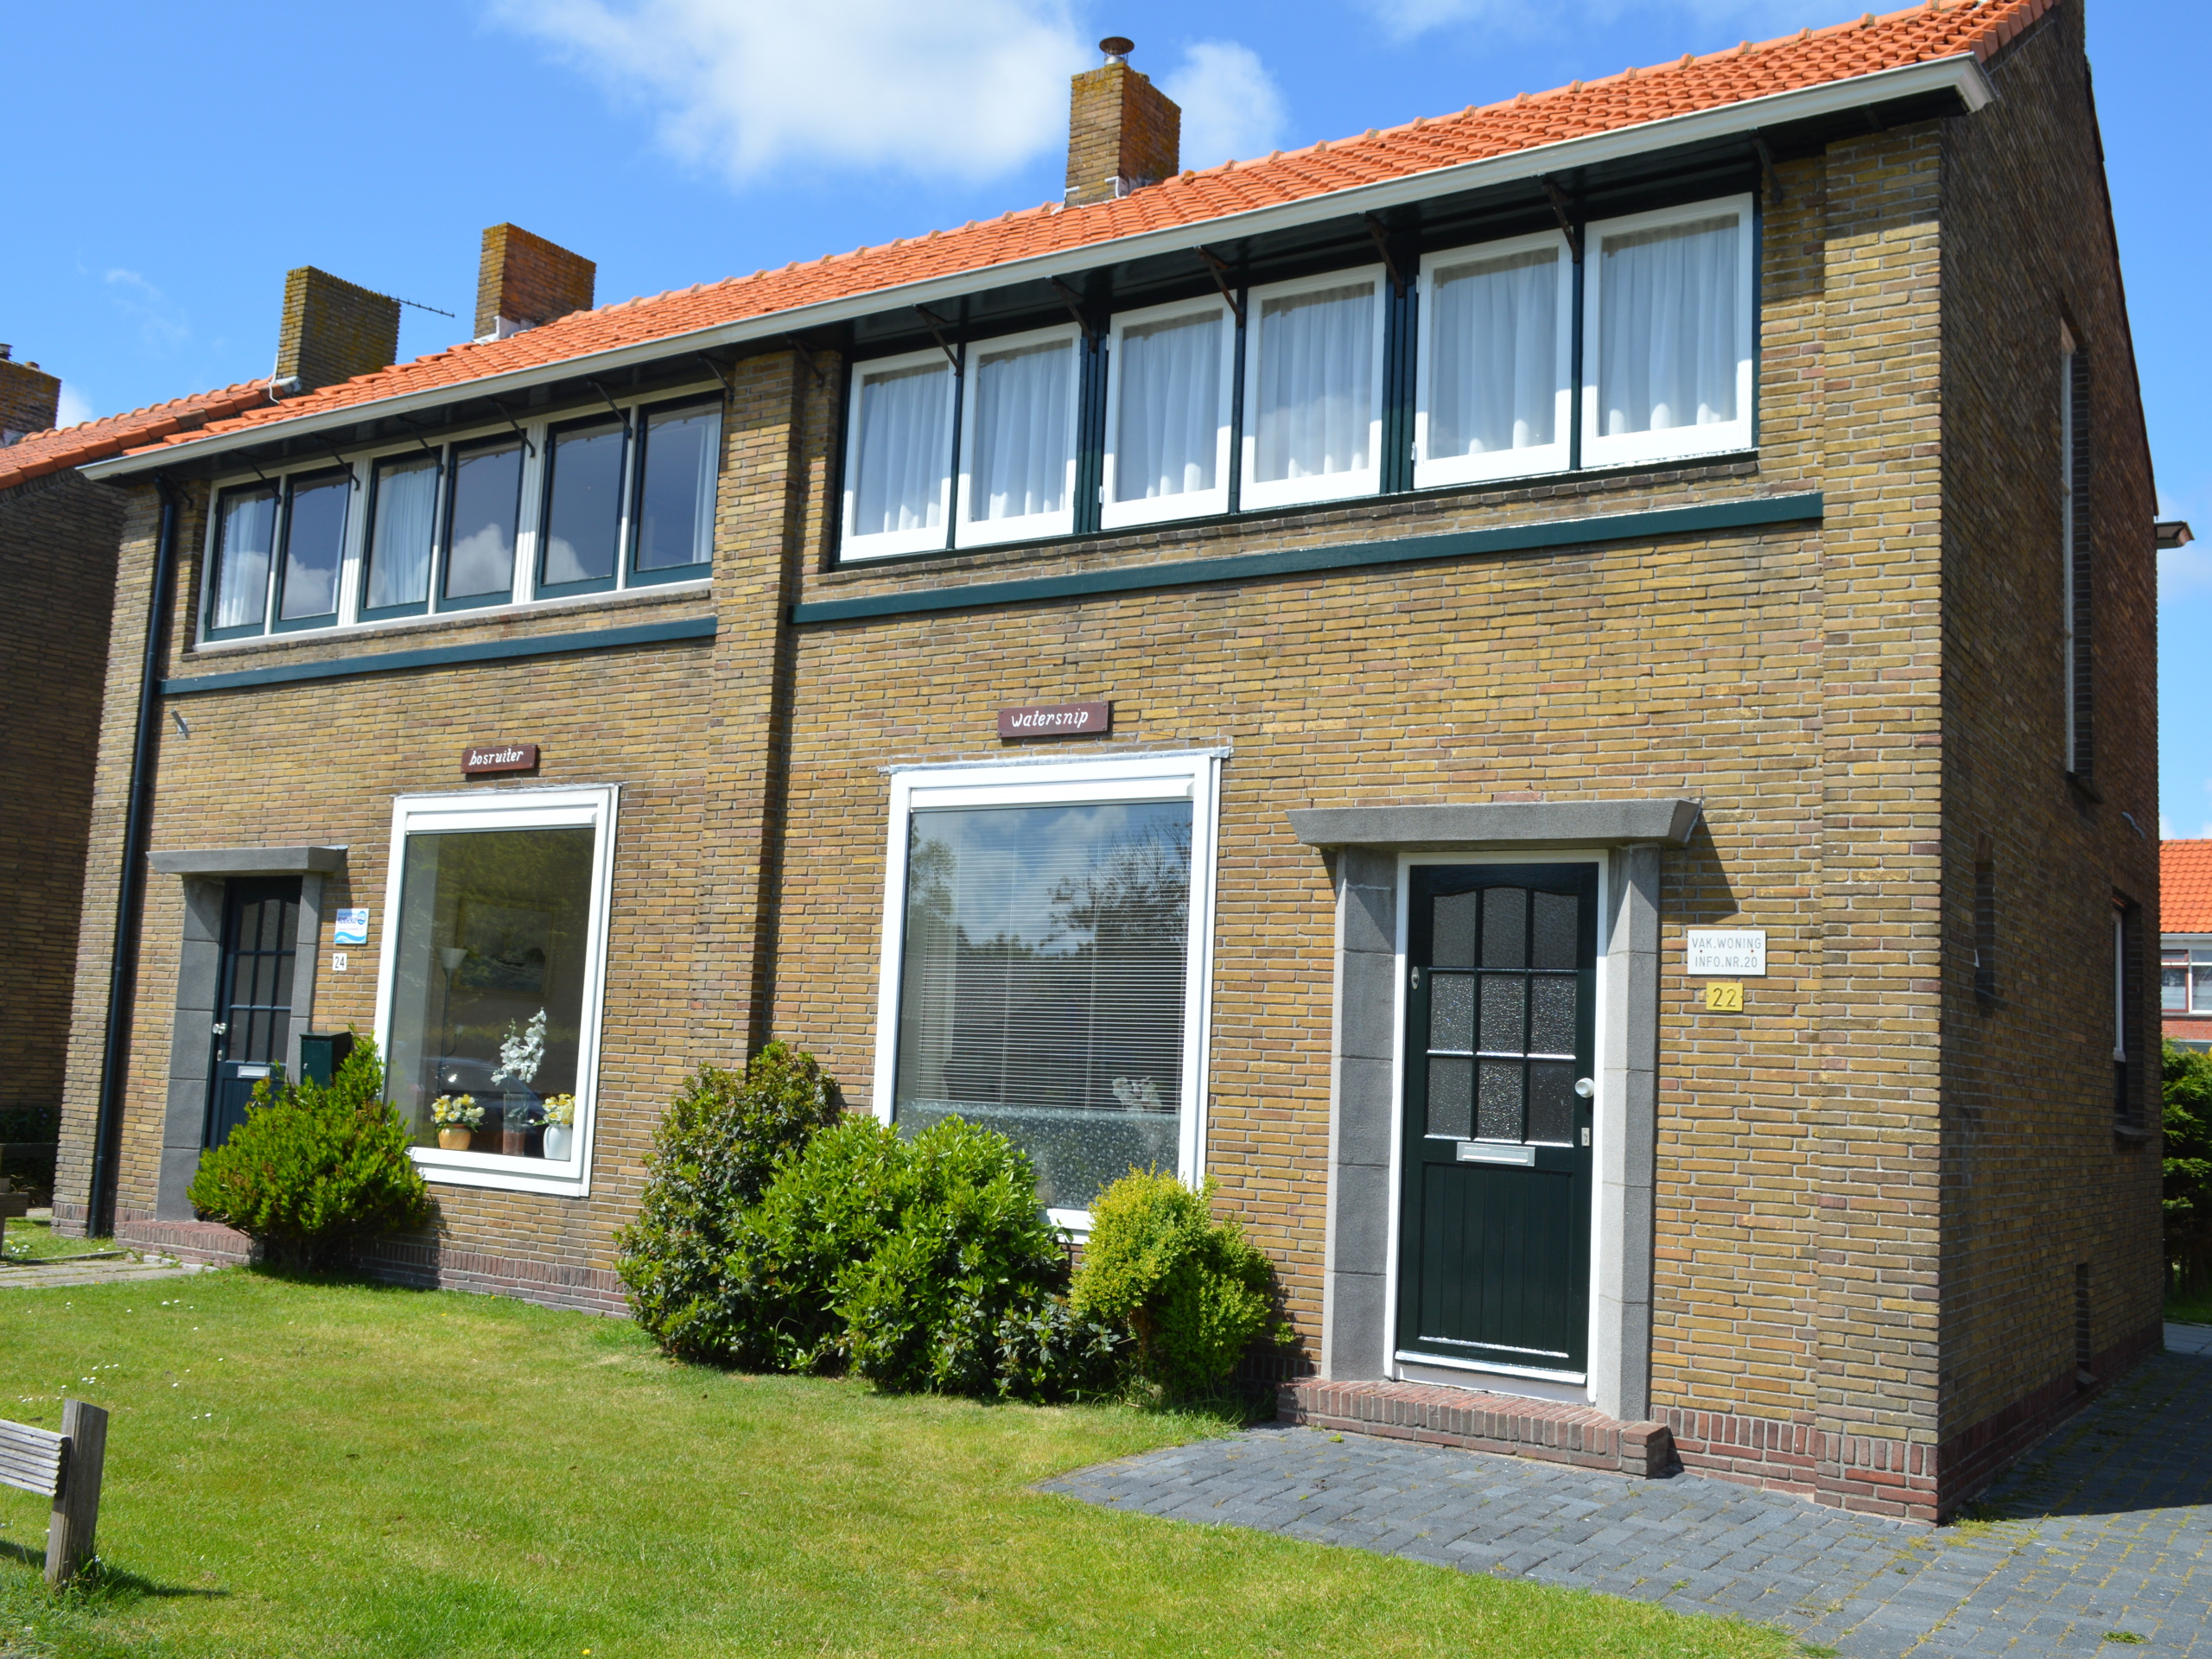 Lovely holiday home located on the Brink near the beach and sea in the middle of De Koog